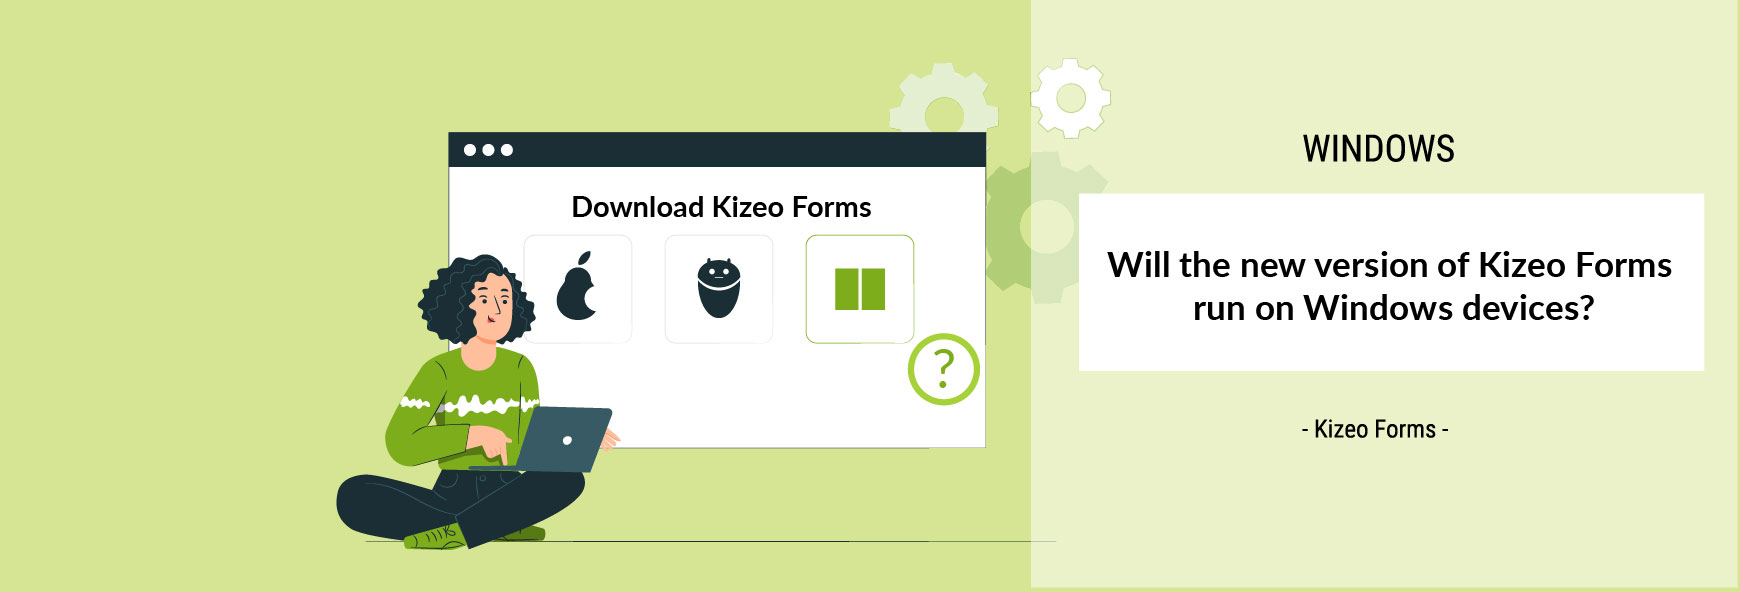 kizeo forms for windows